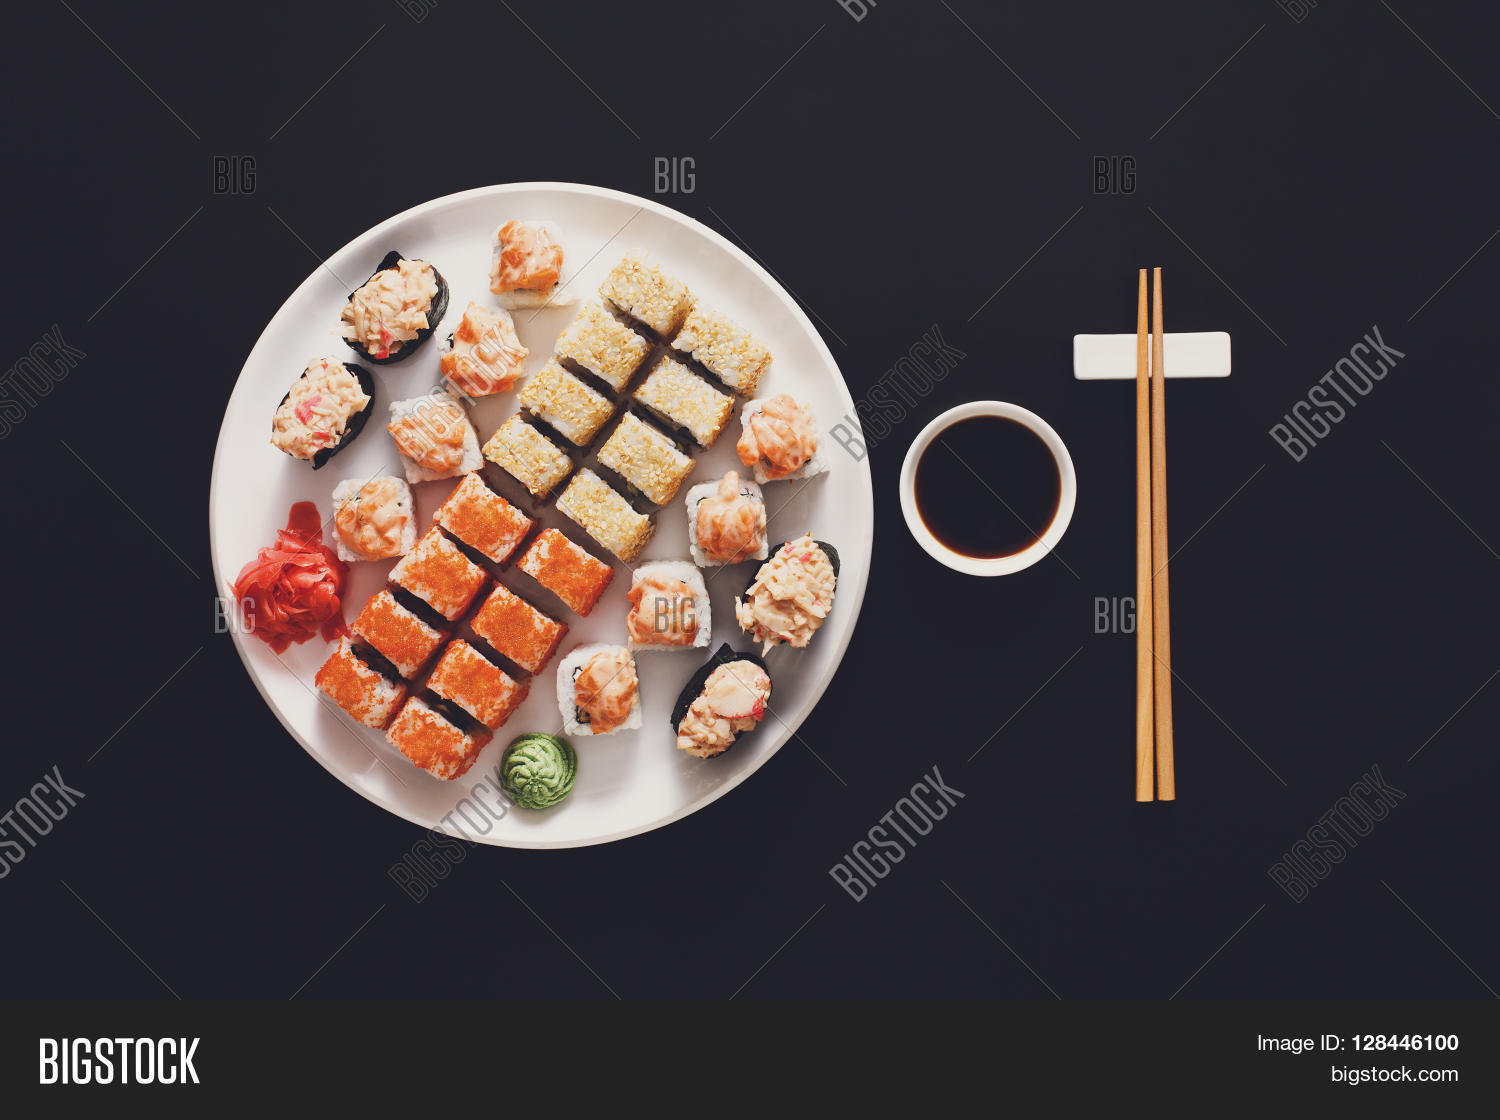 Plate With Food Top View Japanese Food Image And Photo Free Trial Bigstock